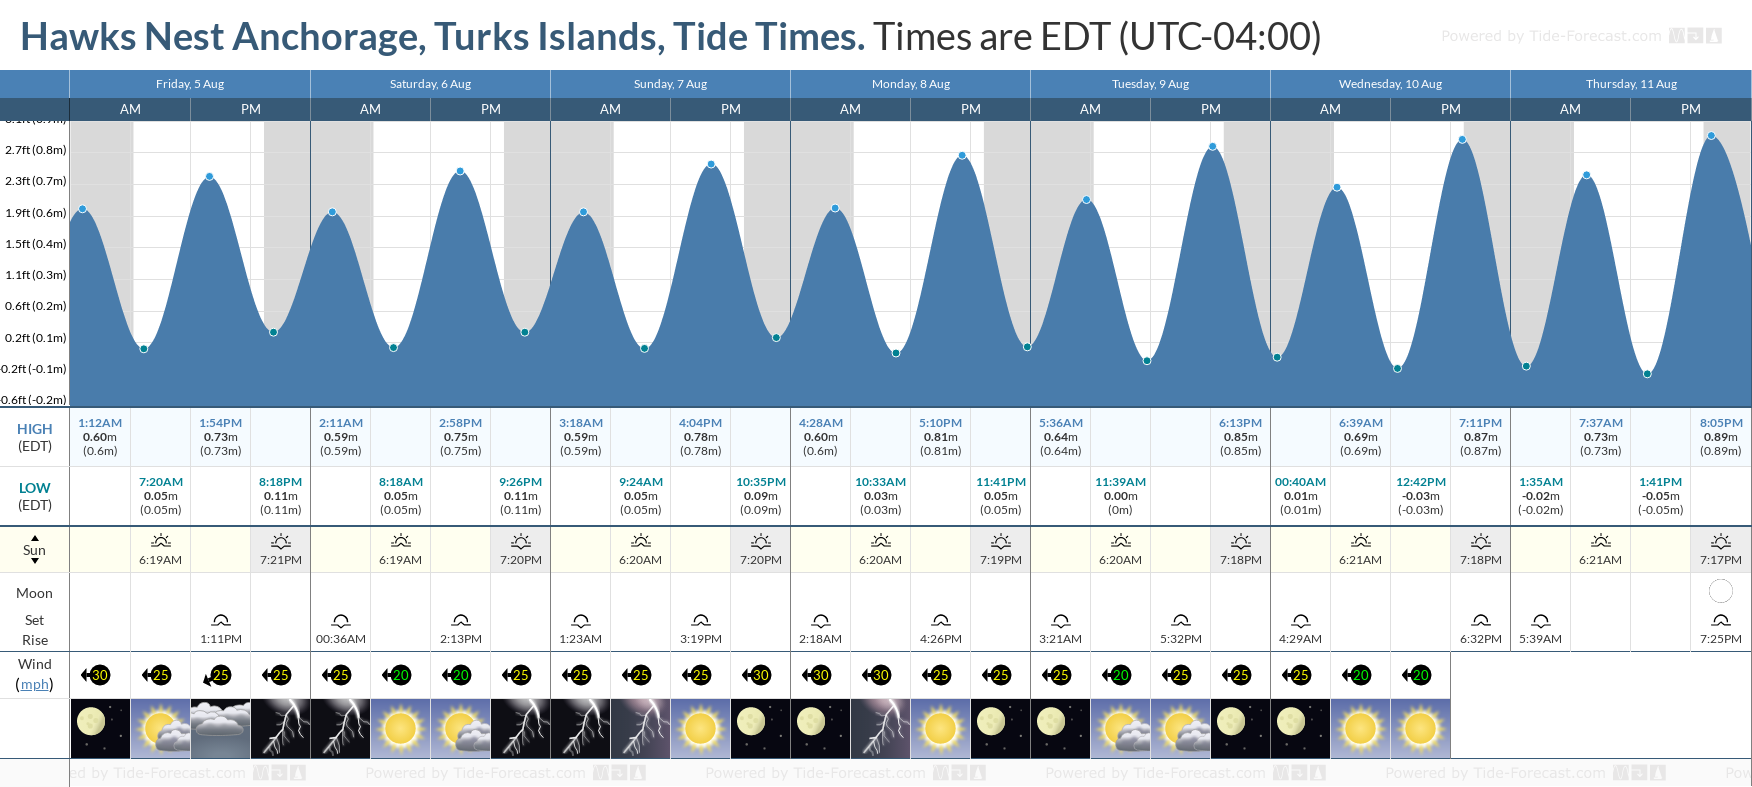 Hawks Nest Anchorage, Turks Islands Tide Chart including high and low tide tide times for the next 7 days